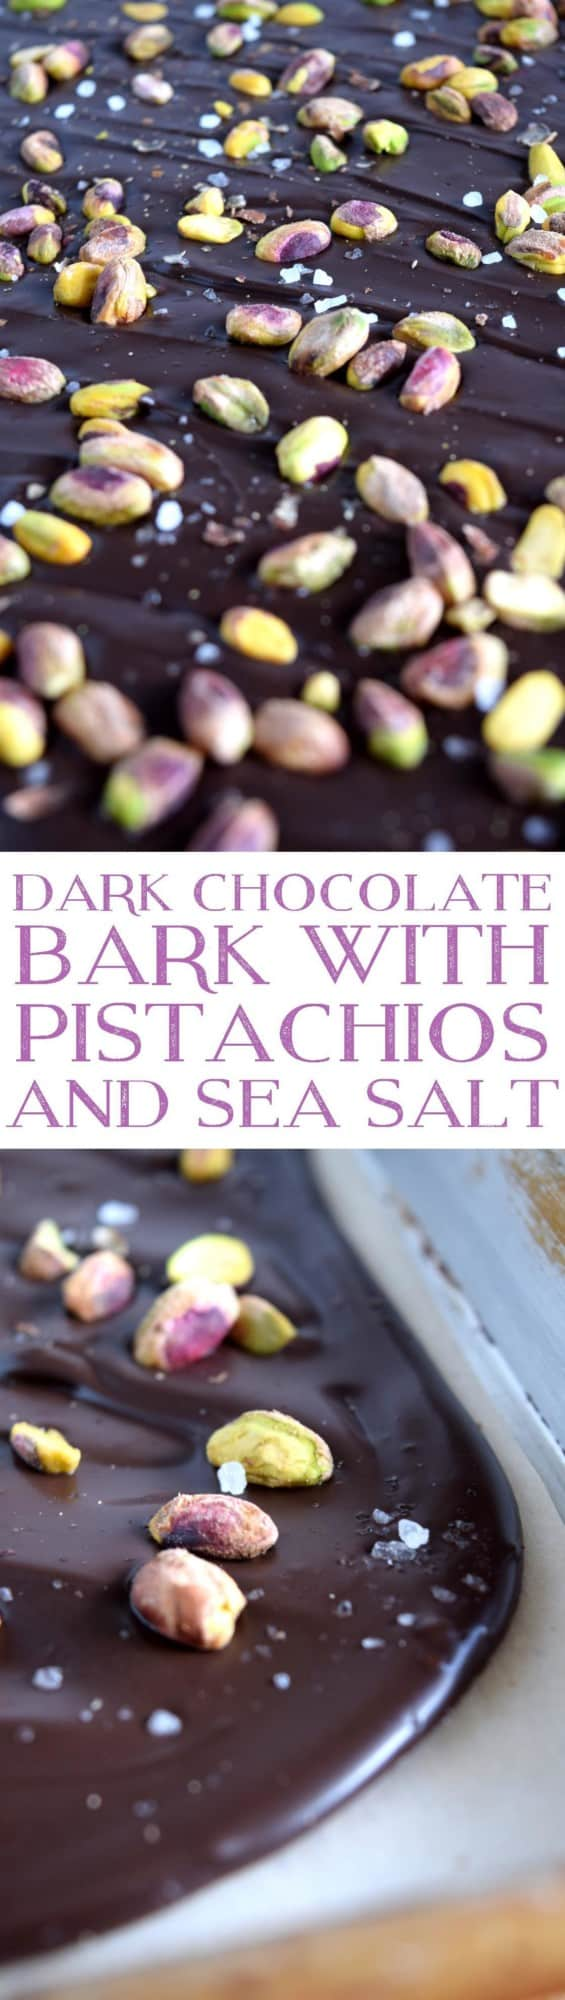 Dark Chocolate Bark with Pistacios and Sea Salt